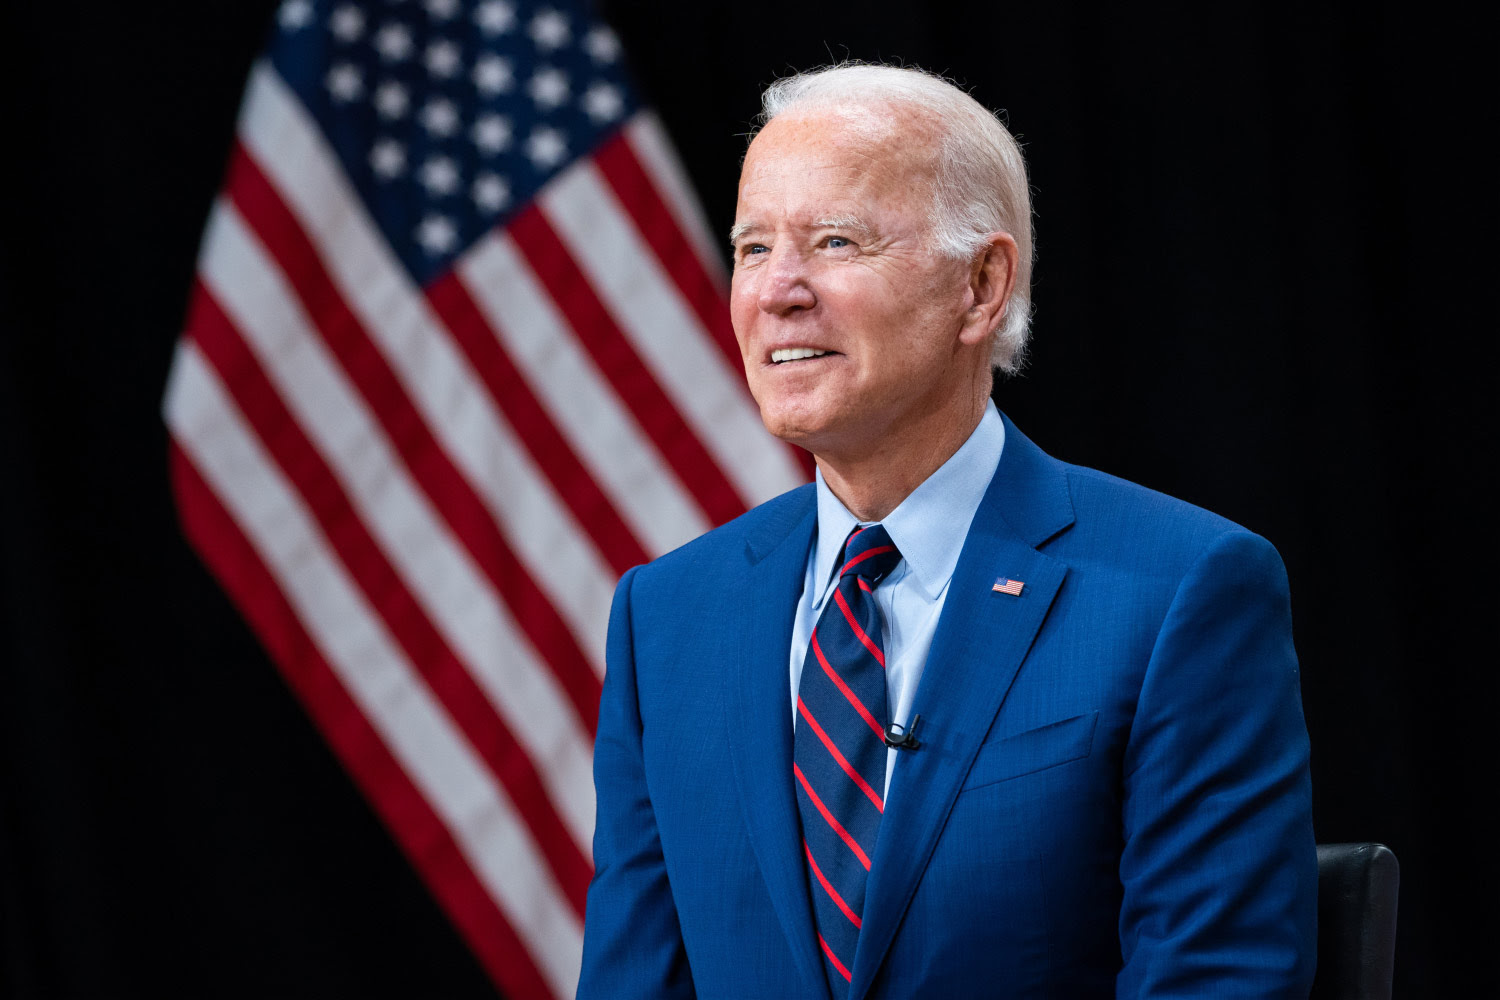 President Joe Biden standing near the American Flag, pondering what he is going to do next.